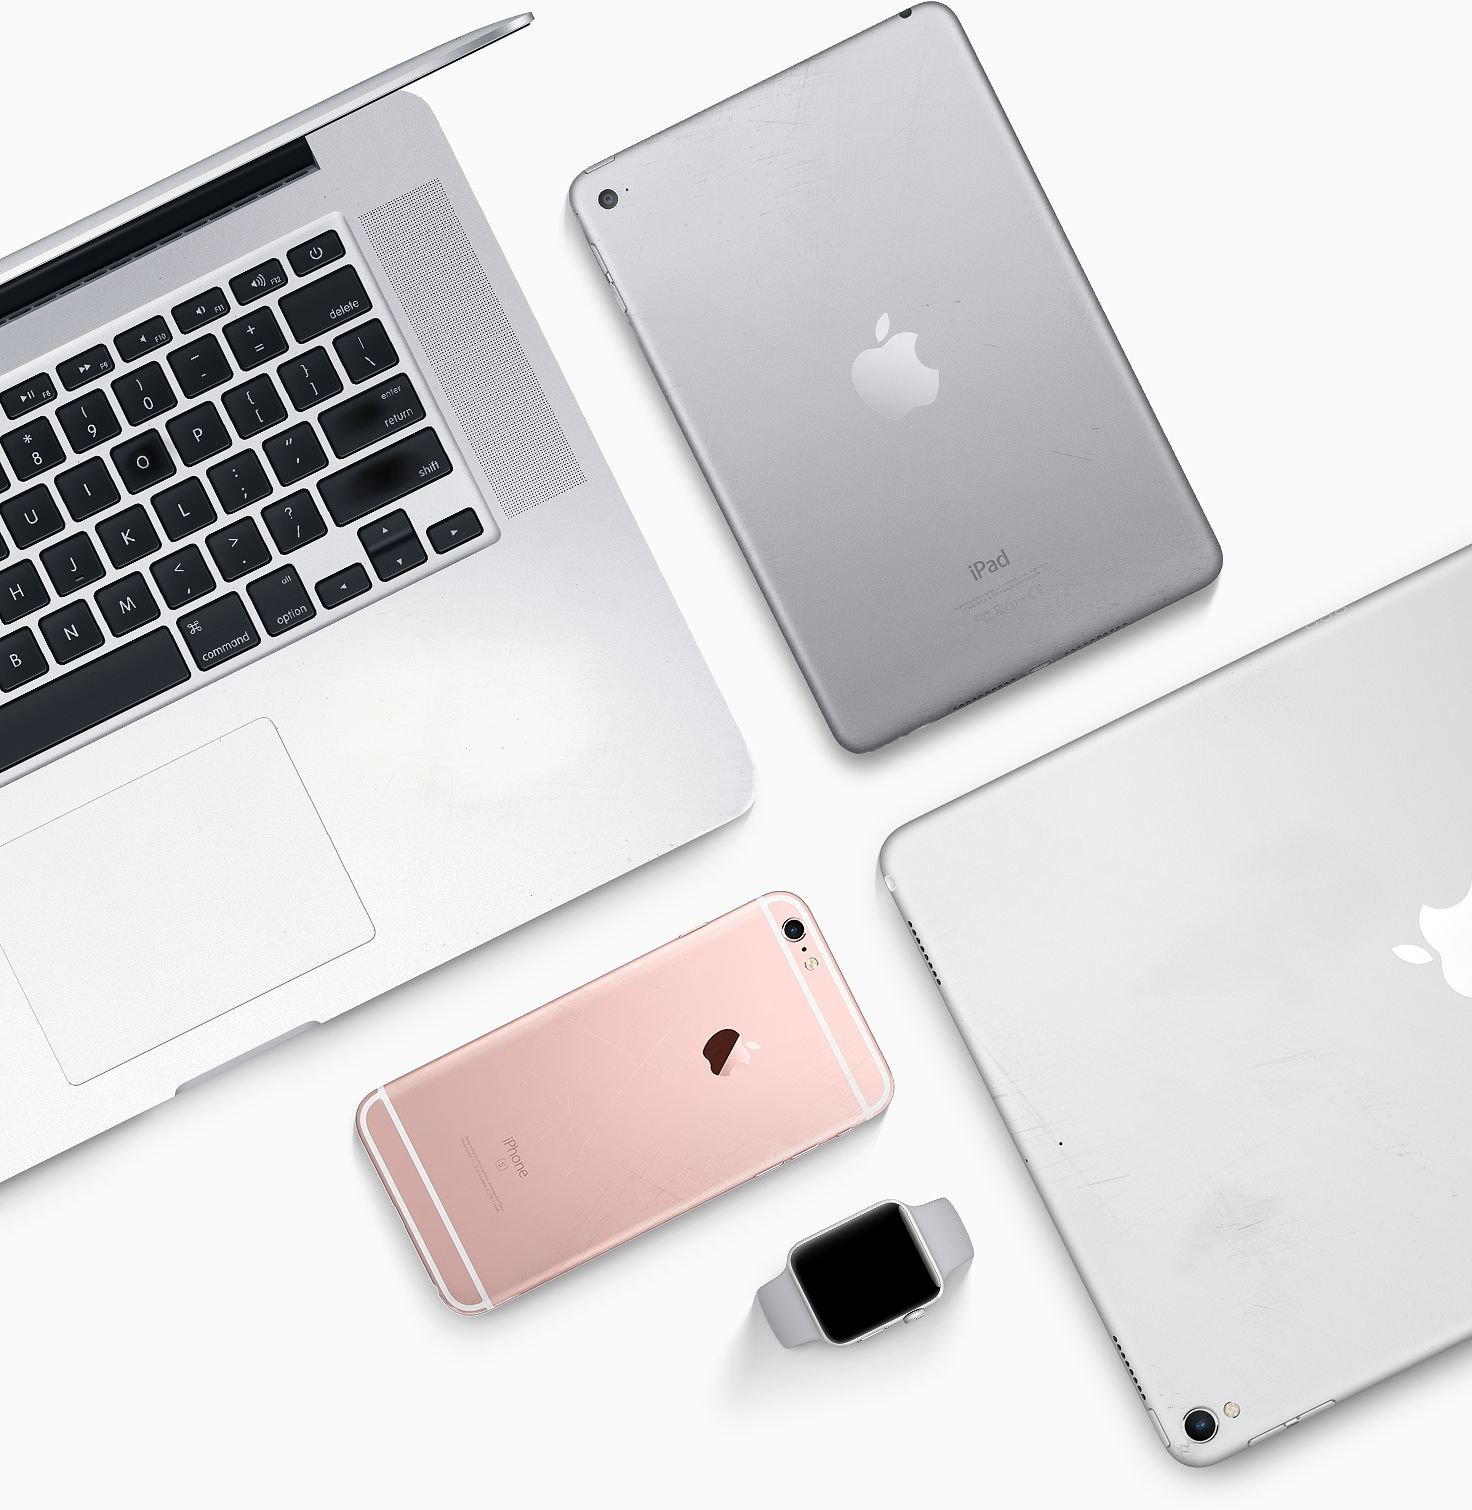 https://0201.nccdn.net/1_2/000/000/189/98a/applelovers.jpg